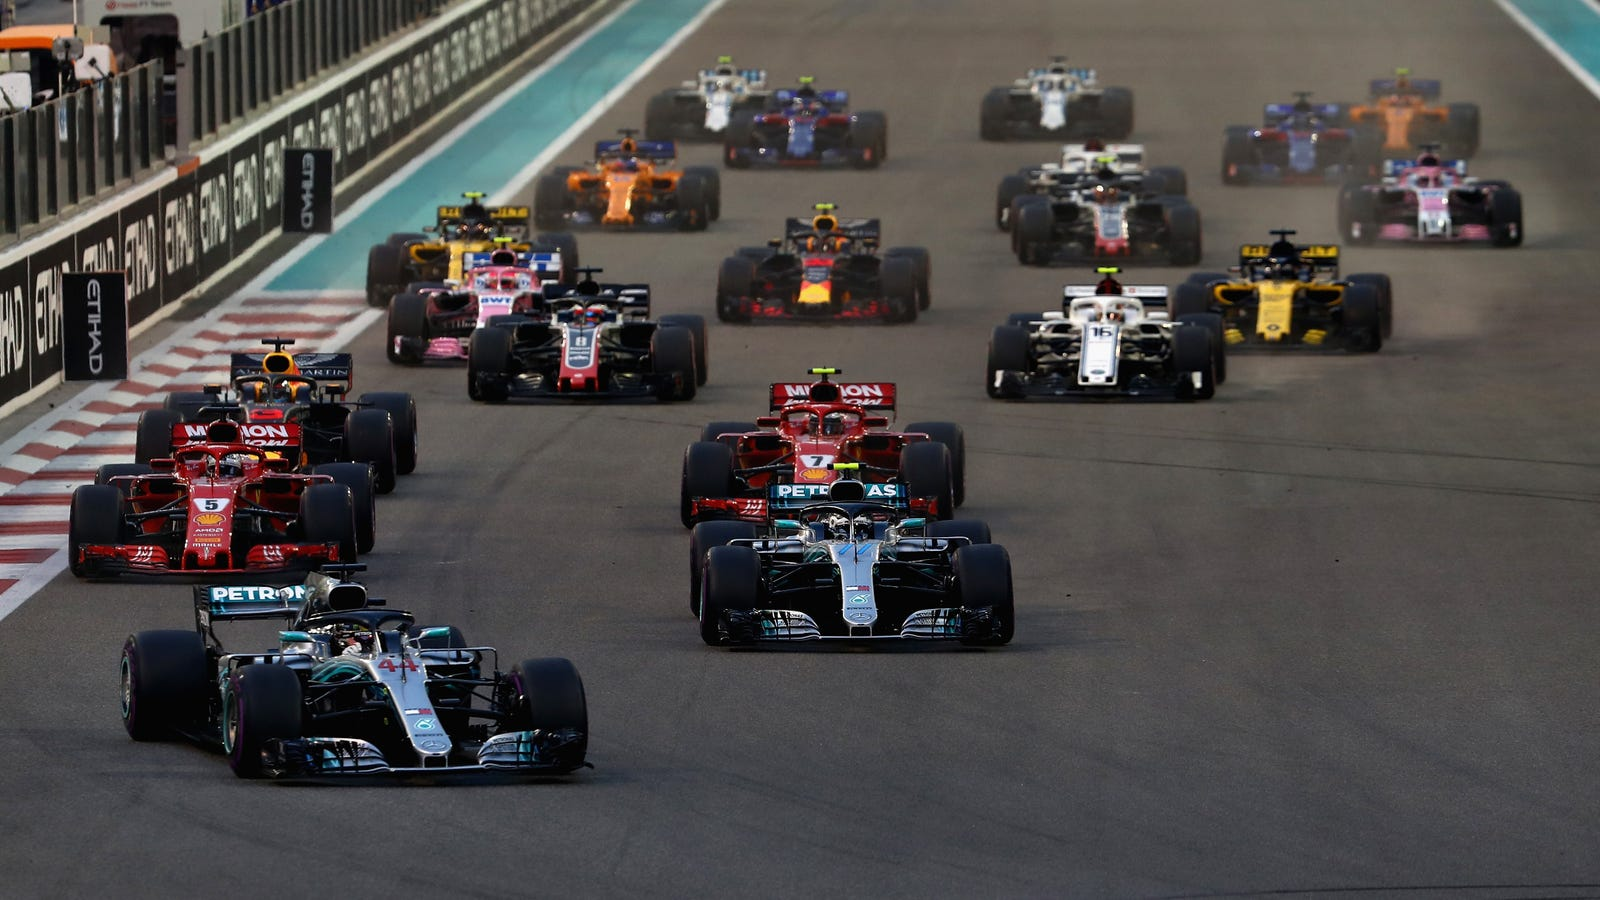 F1 Is The employ of an 'Overtaking Simulation' to Form Better Speed Tracks With More Passing thumbnail